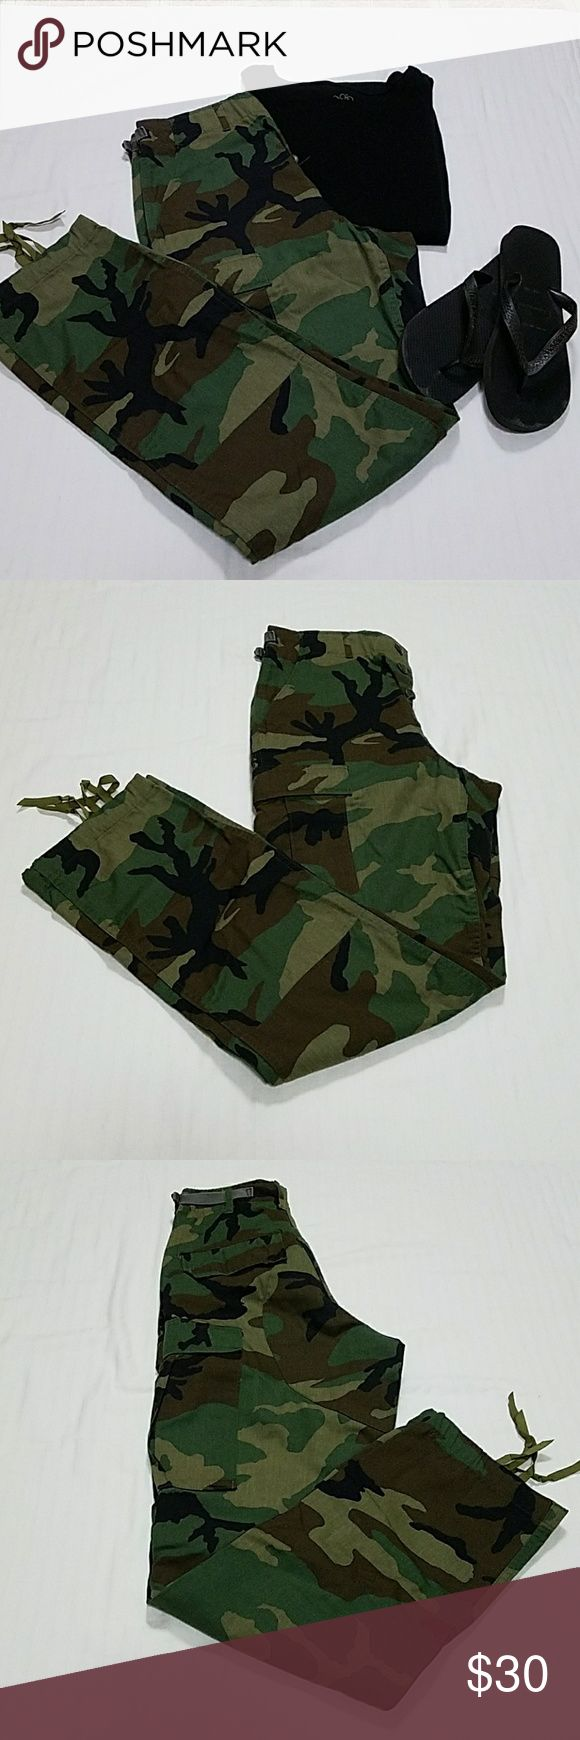 """Military Issue Camouflage Pants Excellent condition camouflage pants with button fly, cargo pockets and optional use drawstring on legs. Per tag - size XS Long, waist up to 27"""", inseam 32-1/2"""" to 35-1/2"""".  Super cute with flip flops, Chucks or even a moto boot.  Feel free to ask questions.  Reasonable offers welcome. Pants"""